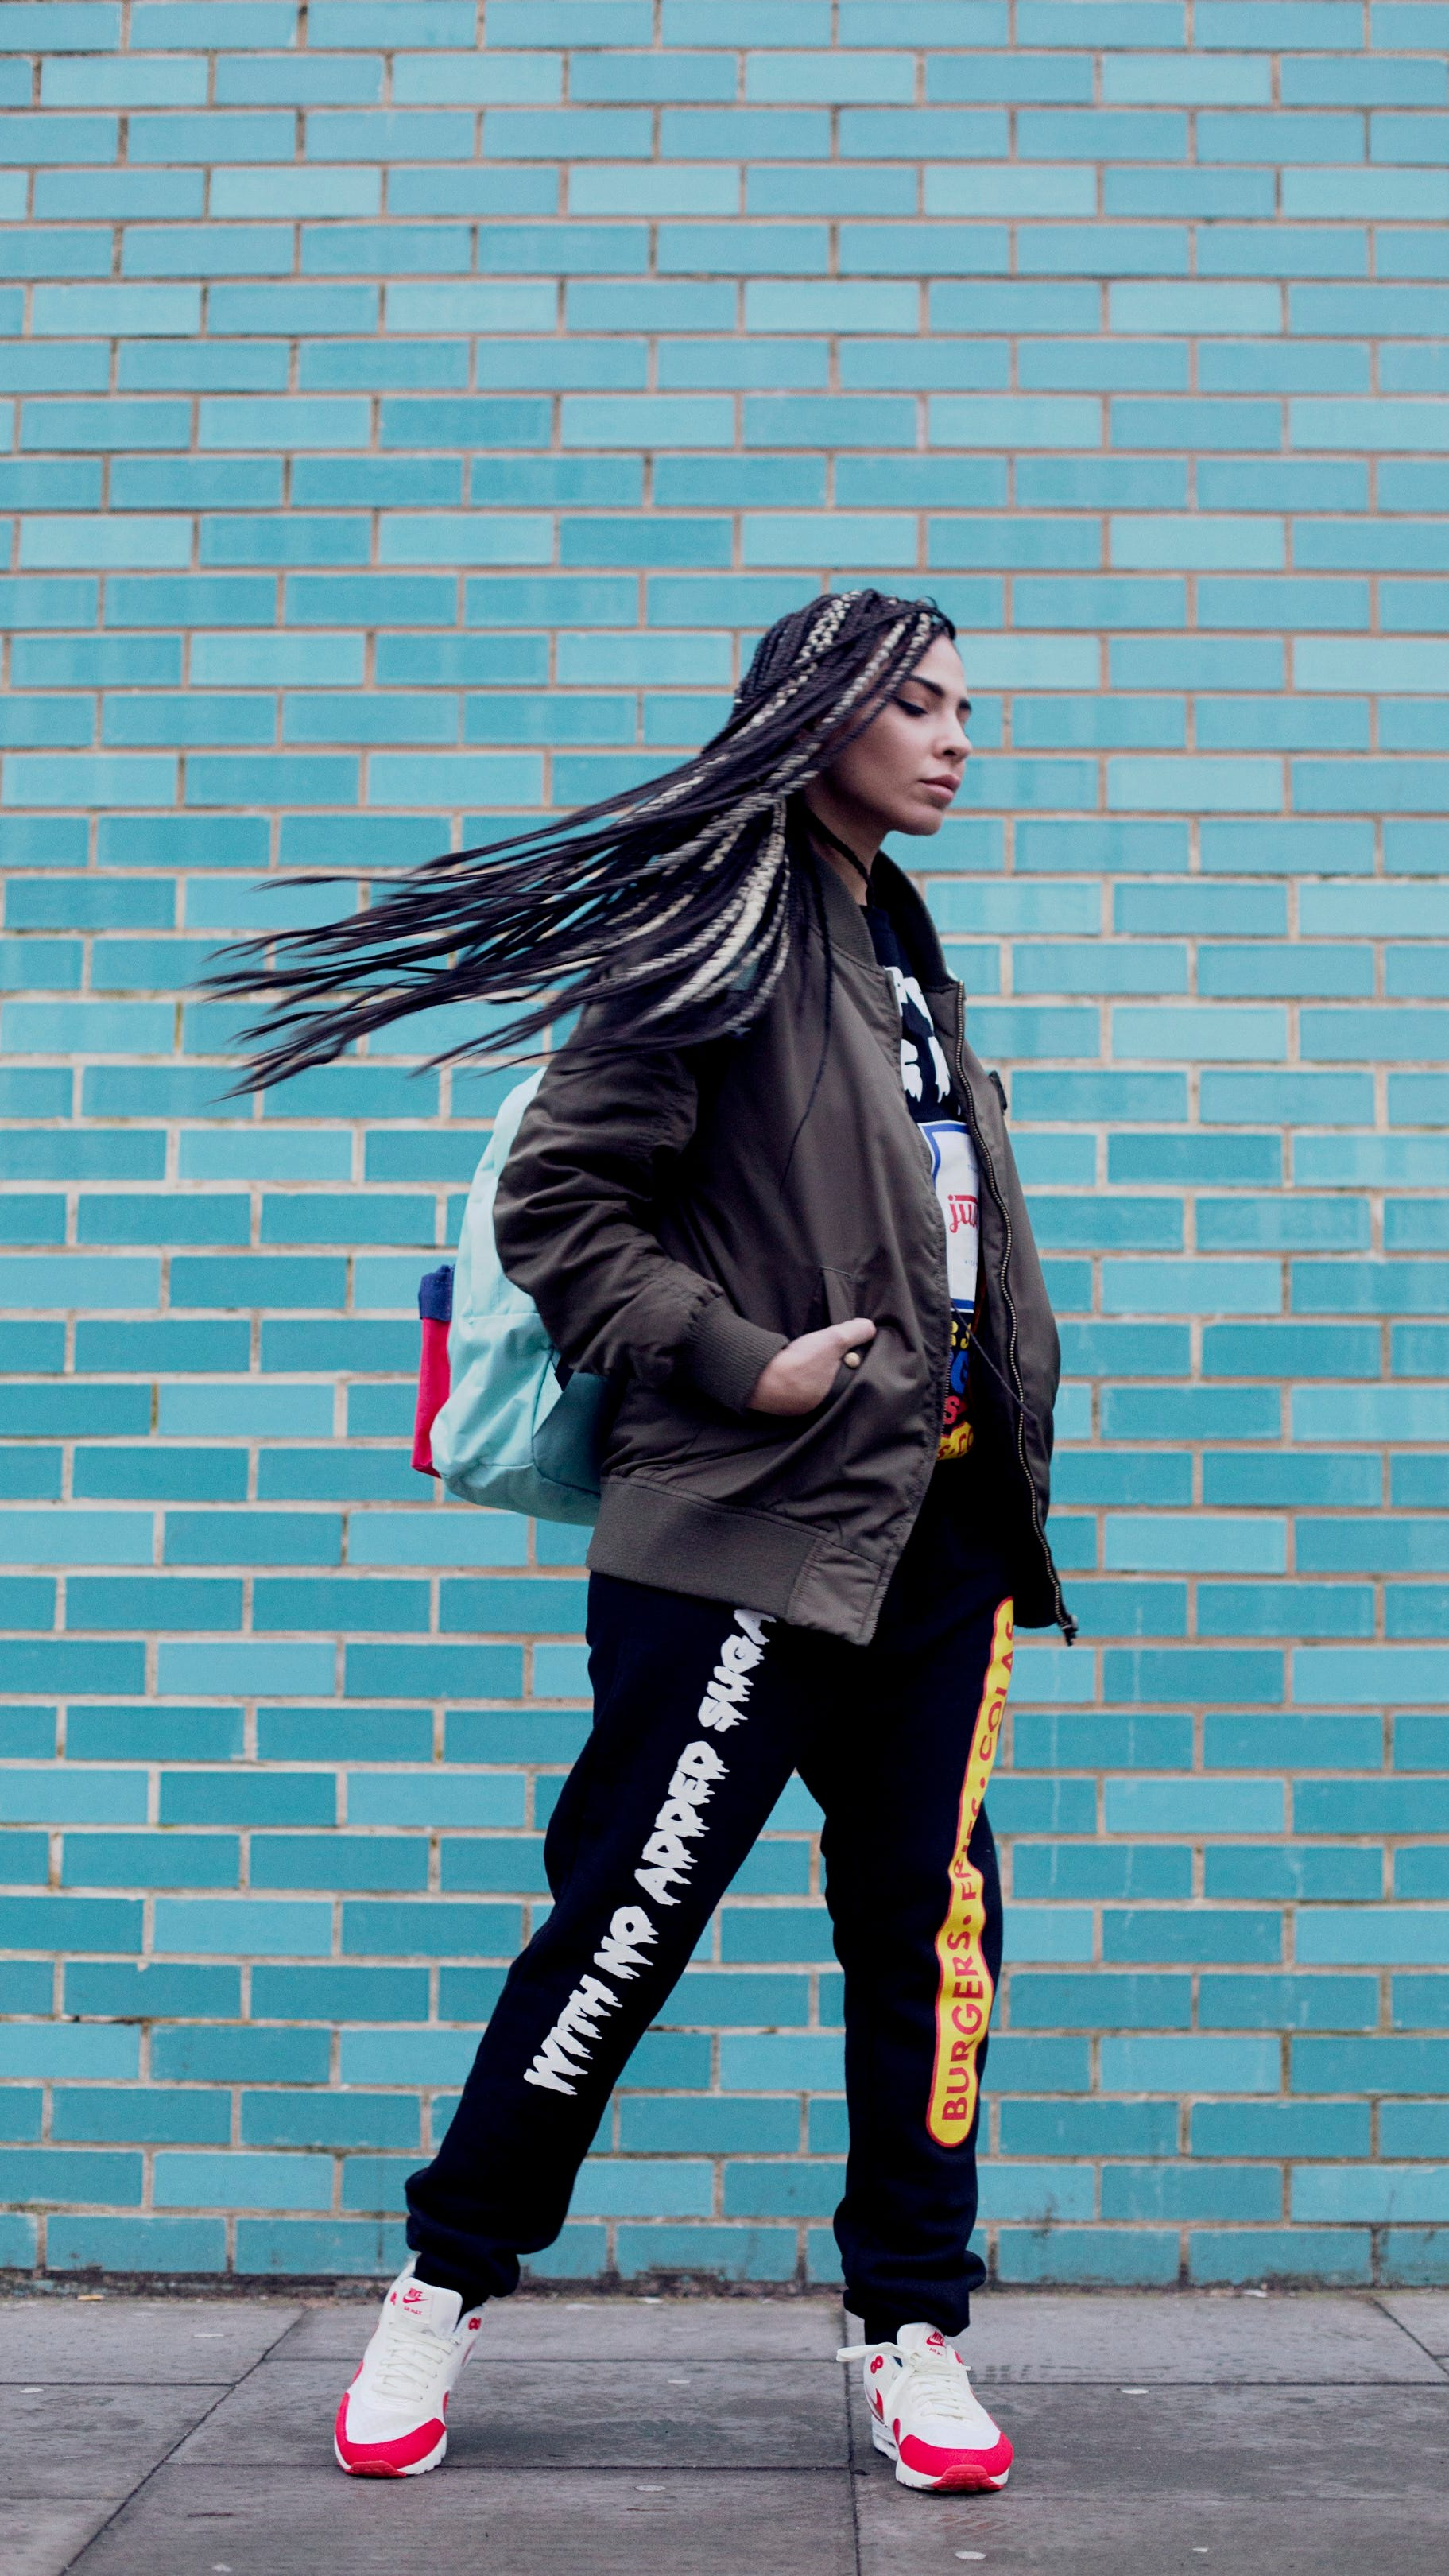 WEAR Japanese Street Style Fashion App Launches In US